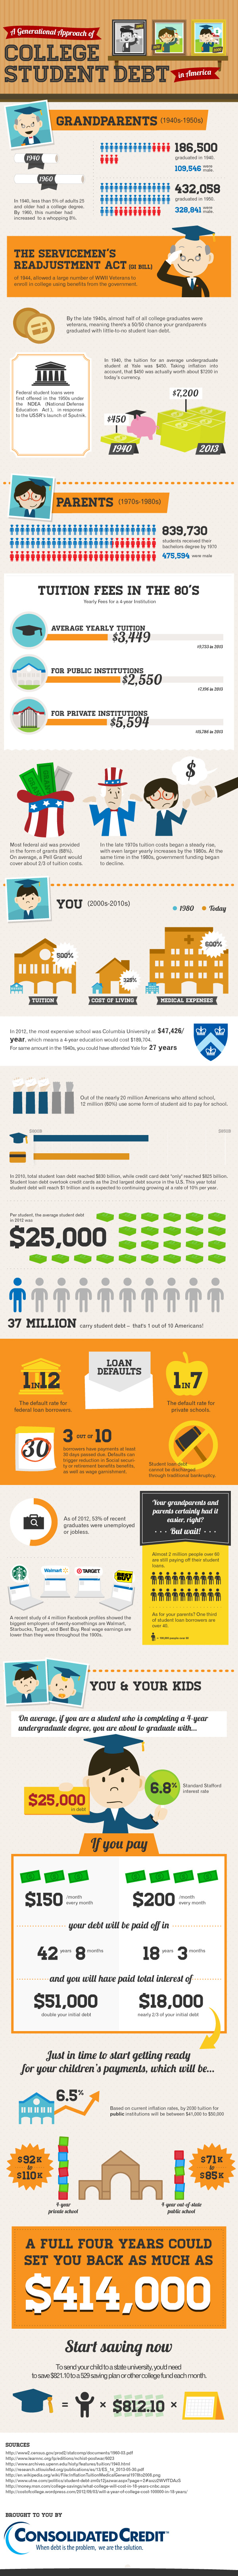 College Debt in America